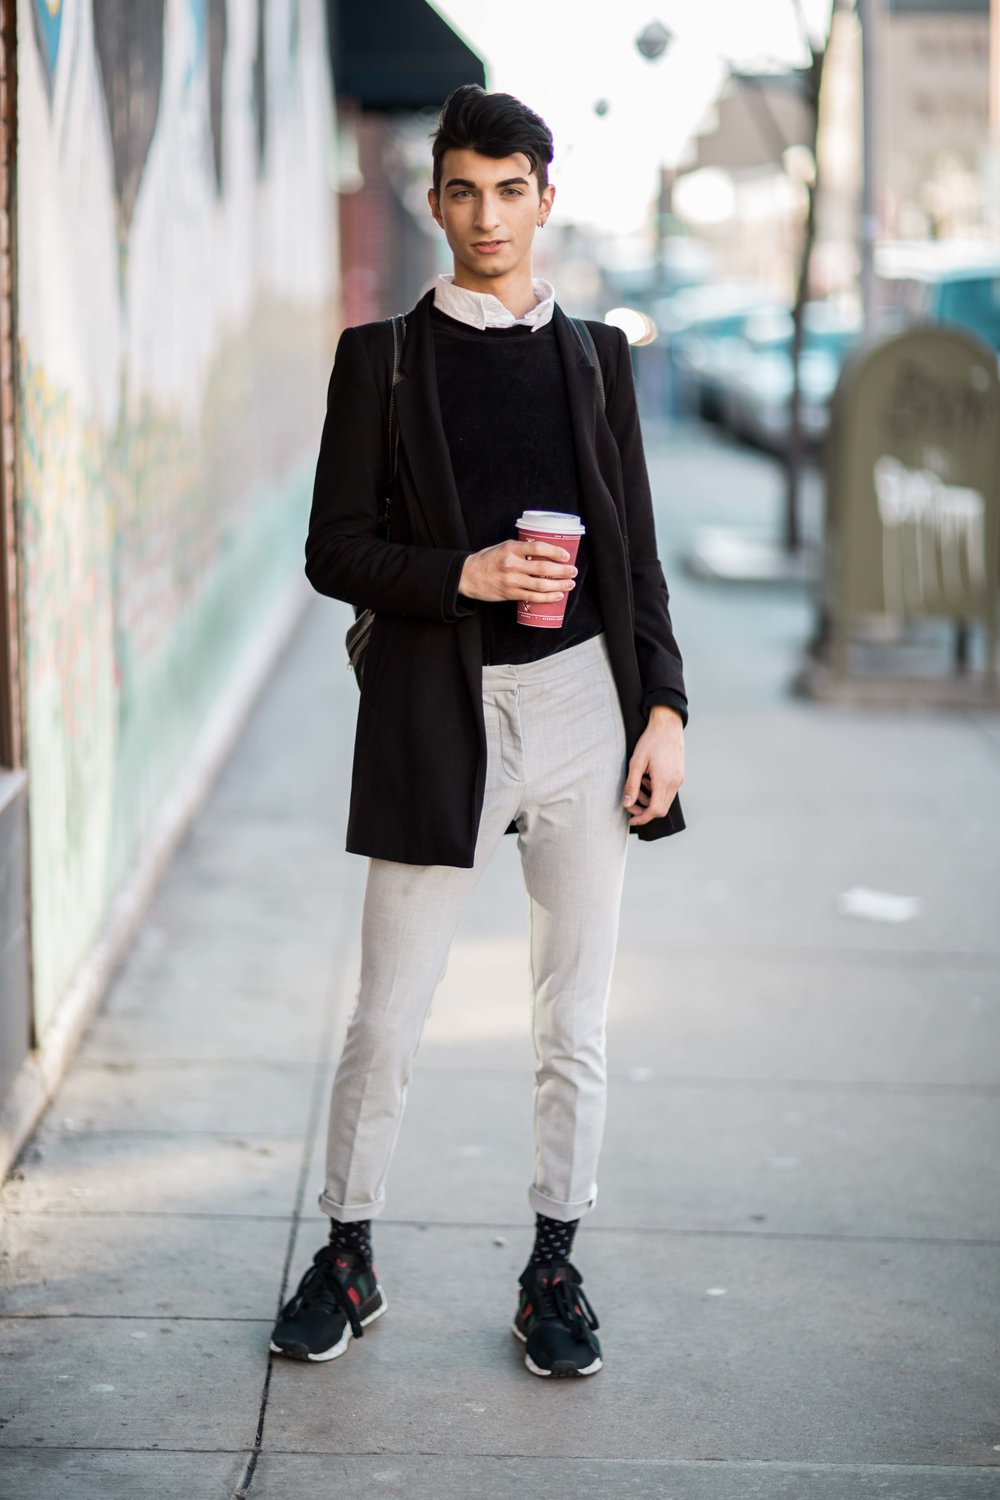 Week Of february 23rd - Street style is still alive during midterm week. Check out the best looks.